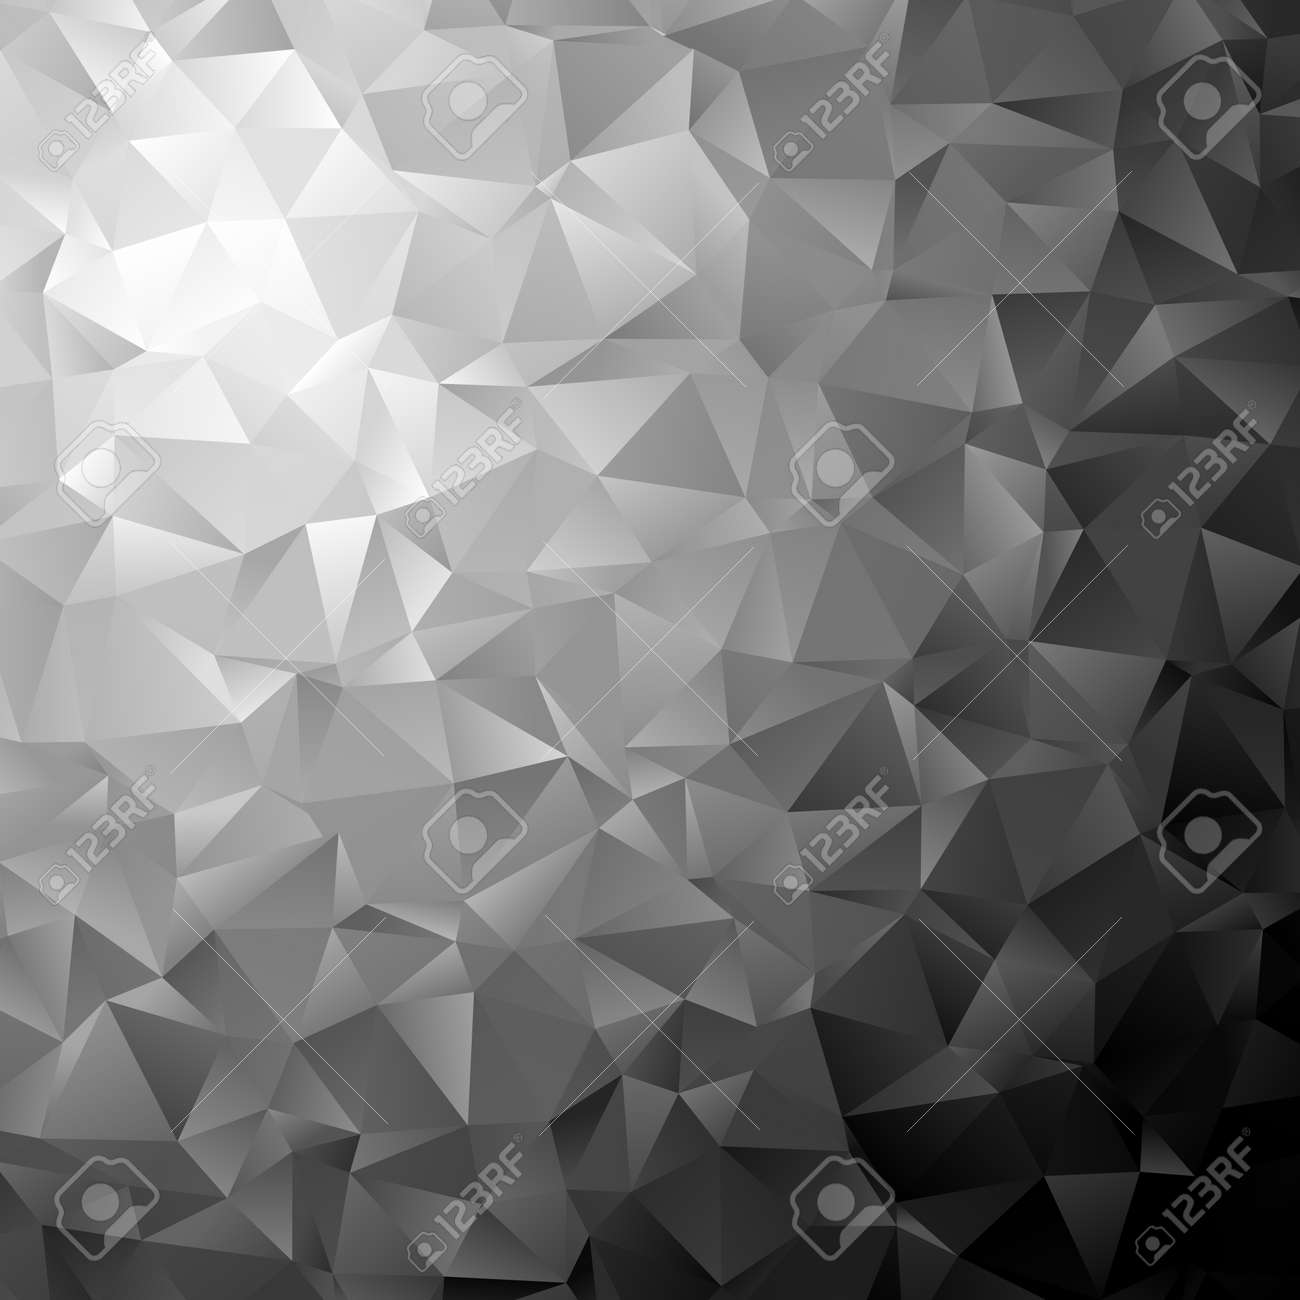 Low poly triangular, triangles vector background. Shatter, crumple effect. Chaotic glass pane - 165826812